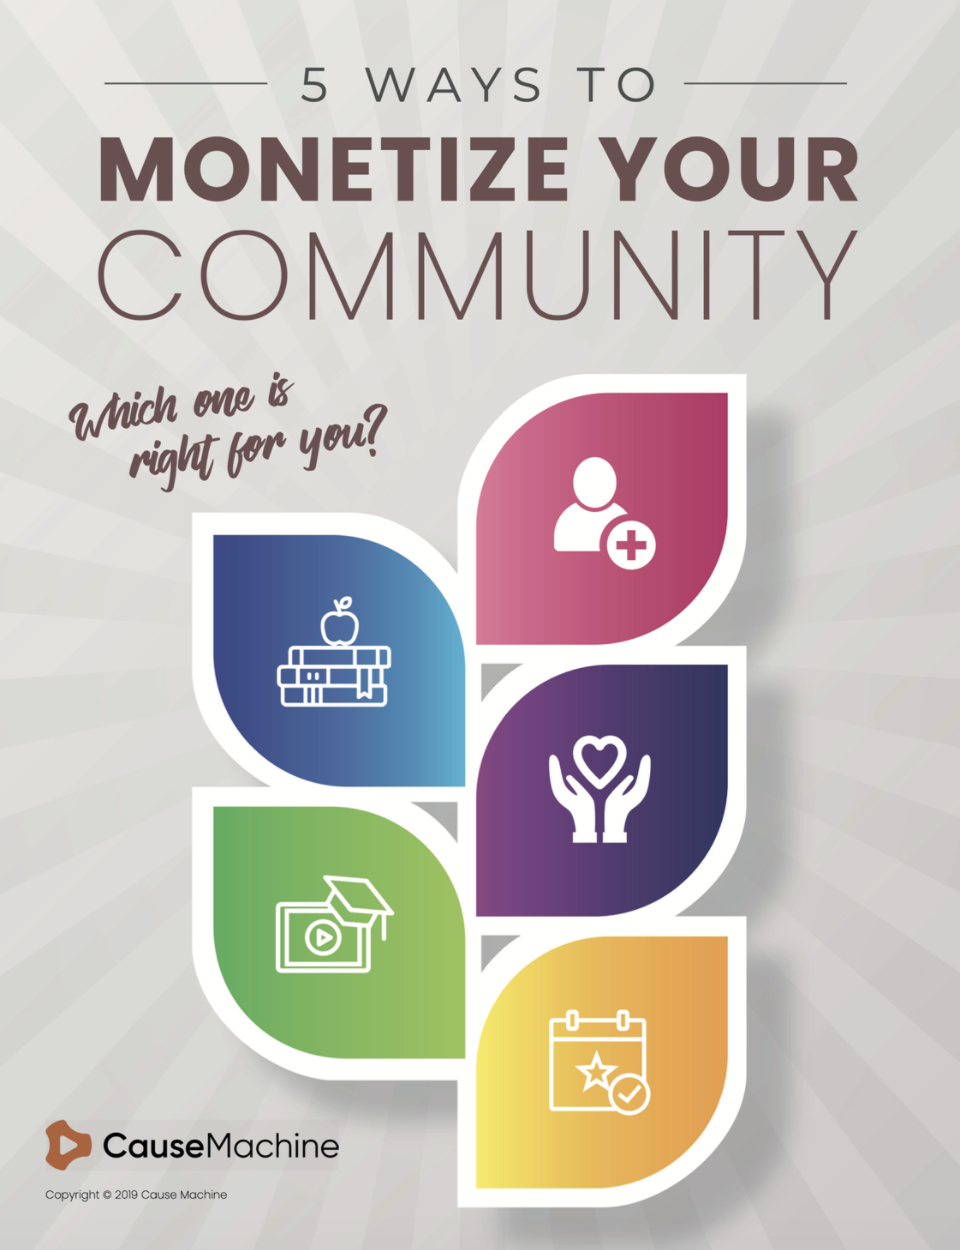 5 ways to monetize your community